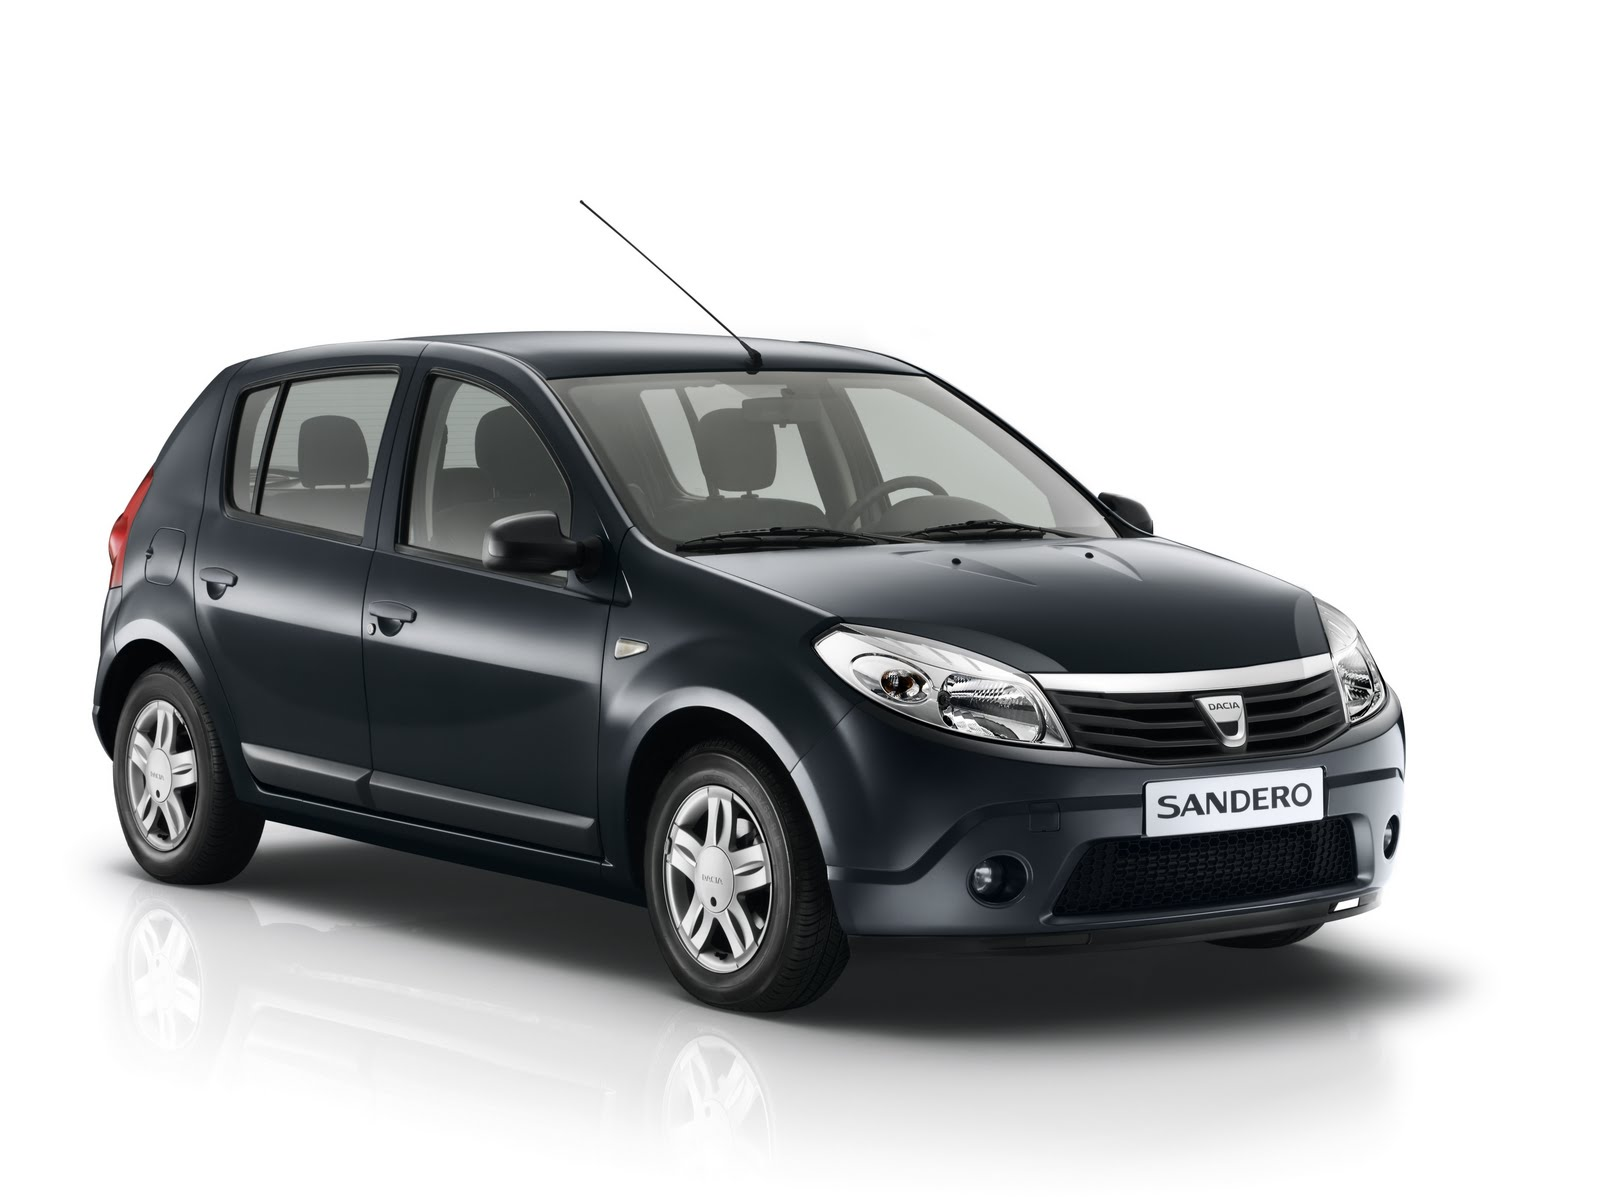 dacia sandero 1 2 16v 75hp lpg euro5 greek renault news. Black Bedroom Furniture Sets. Home Design Ideas